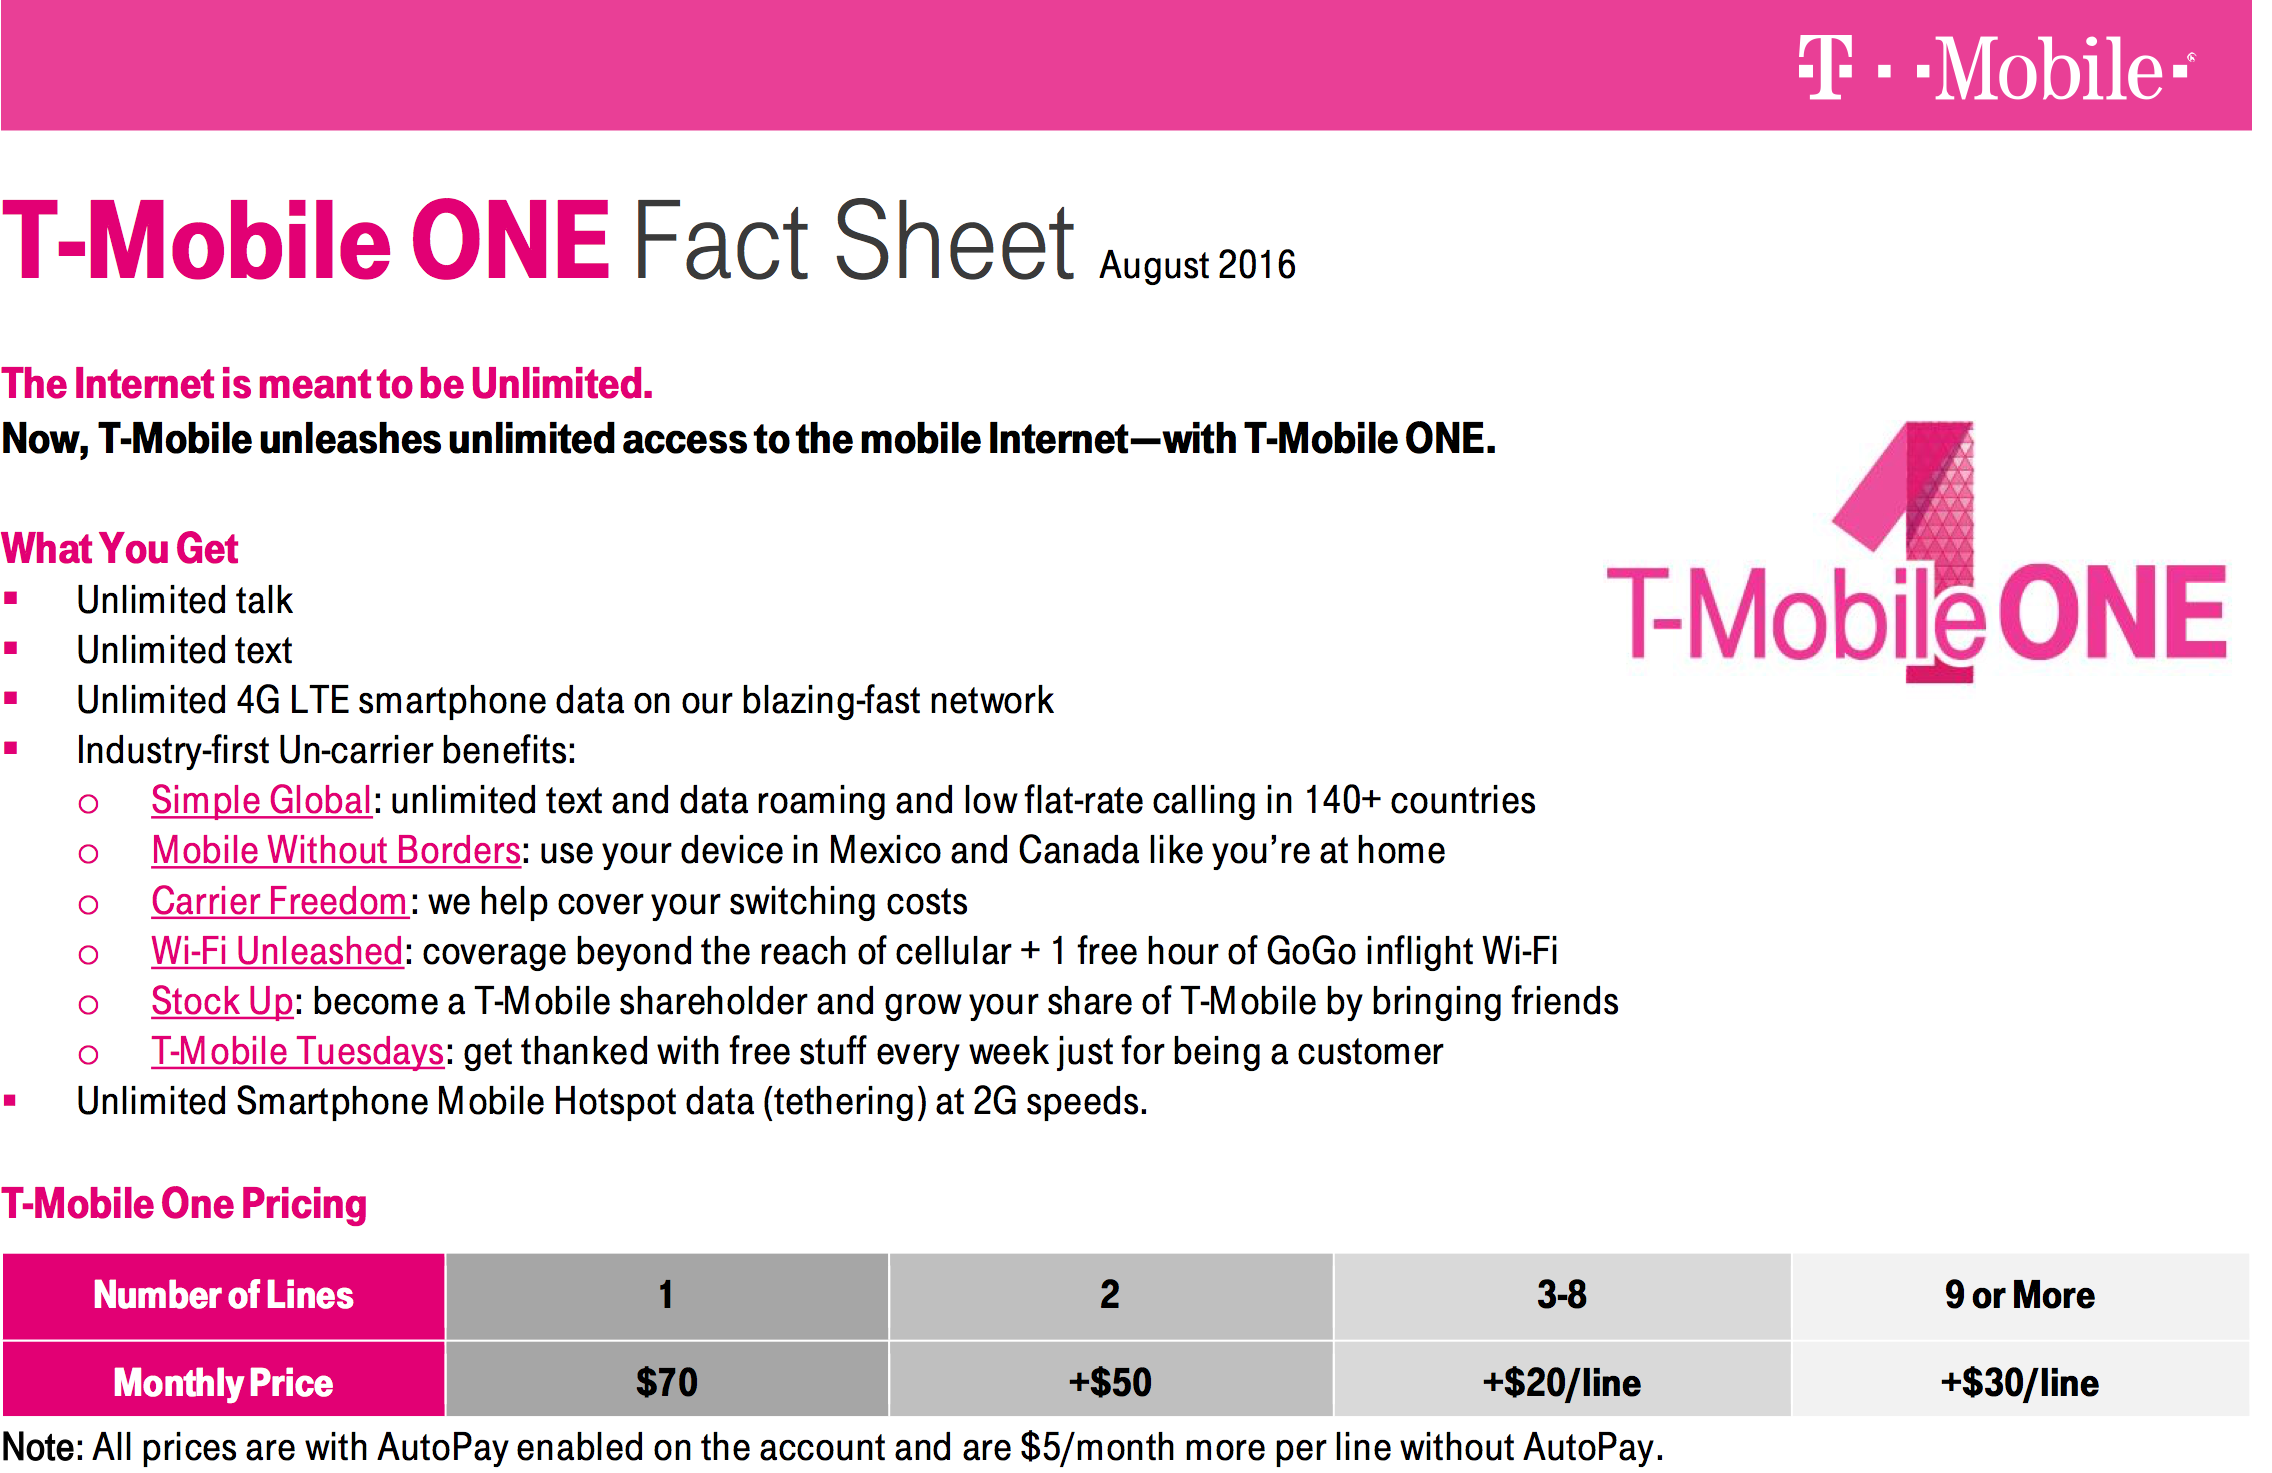 T-Mobile One Fact Sheet image 001